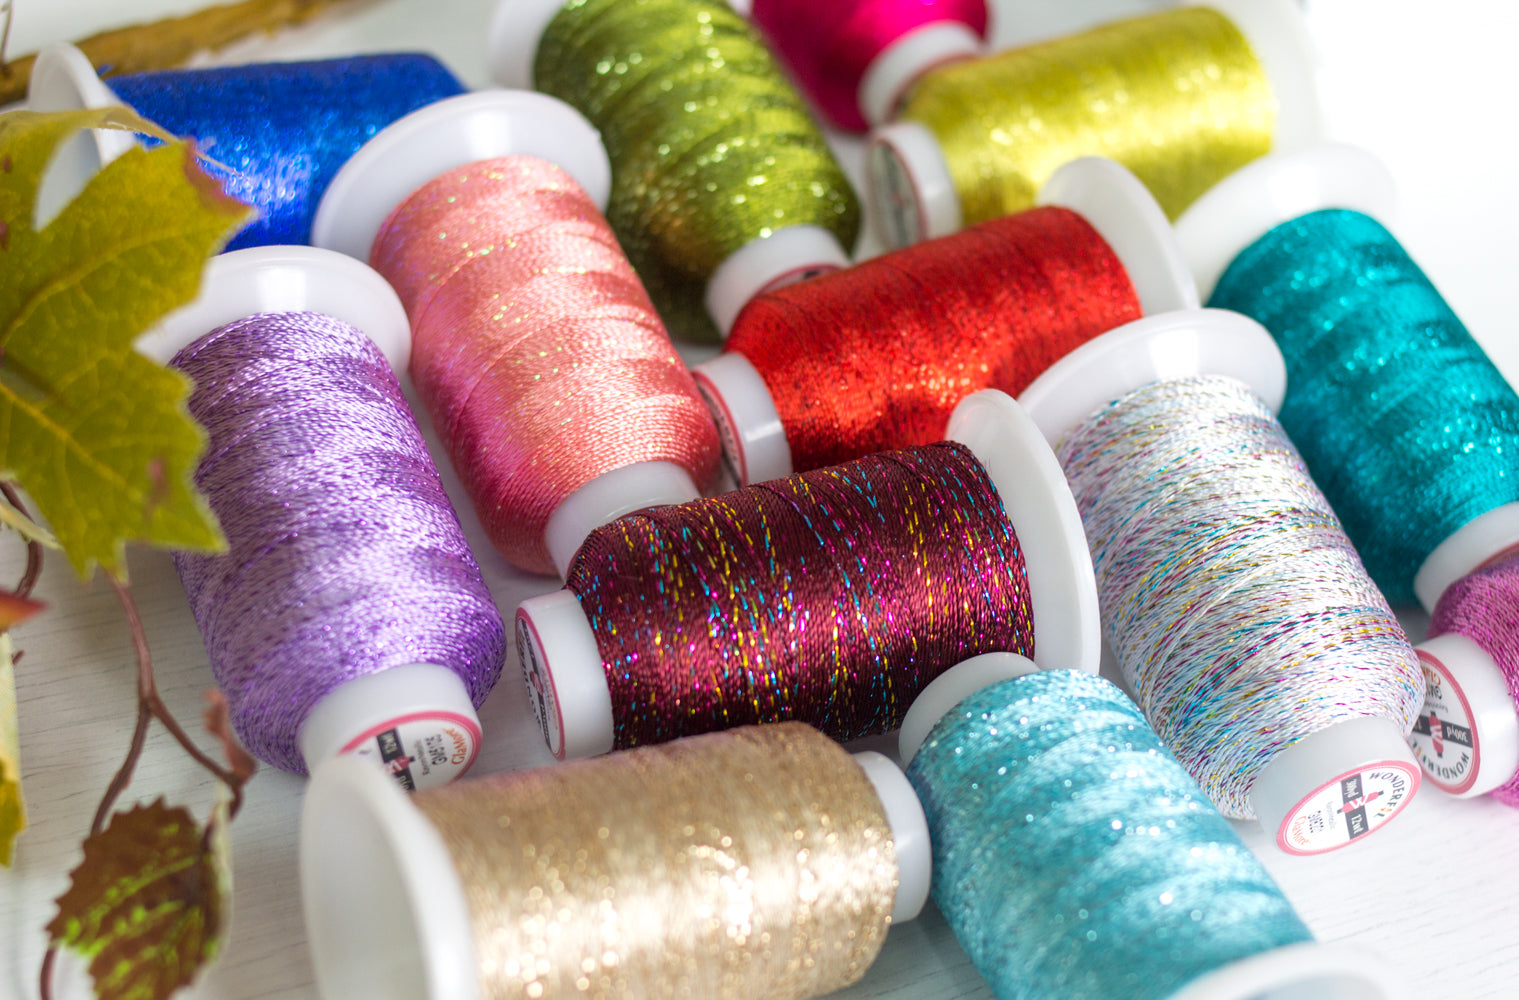 GlaMore 12wt, Rayon and Metallic Embroidery Thread